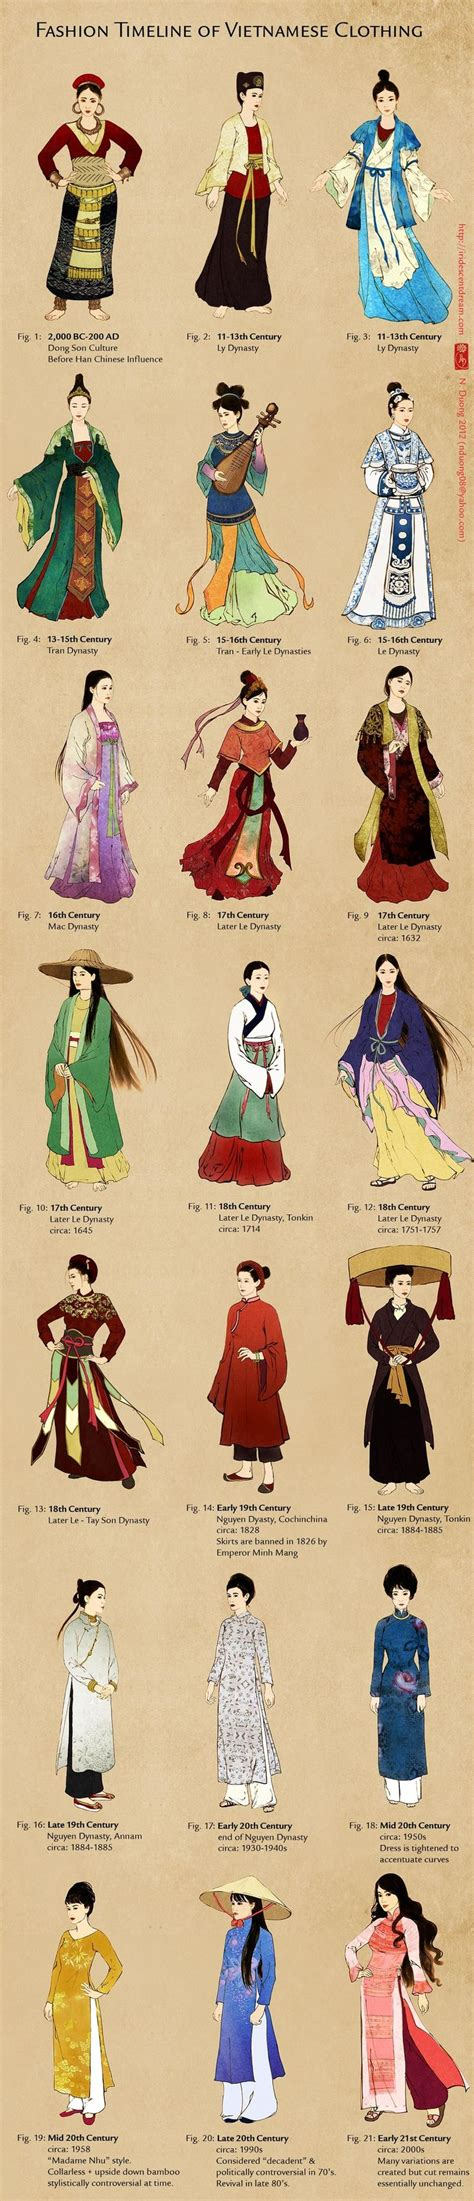 chinese traditional fashion timeline south asian styles through history china japan vietnam